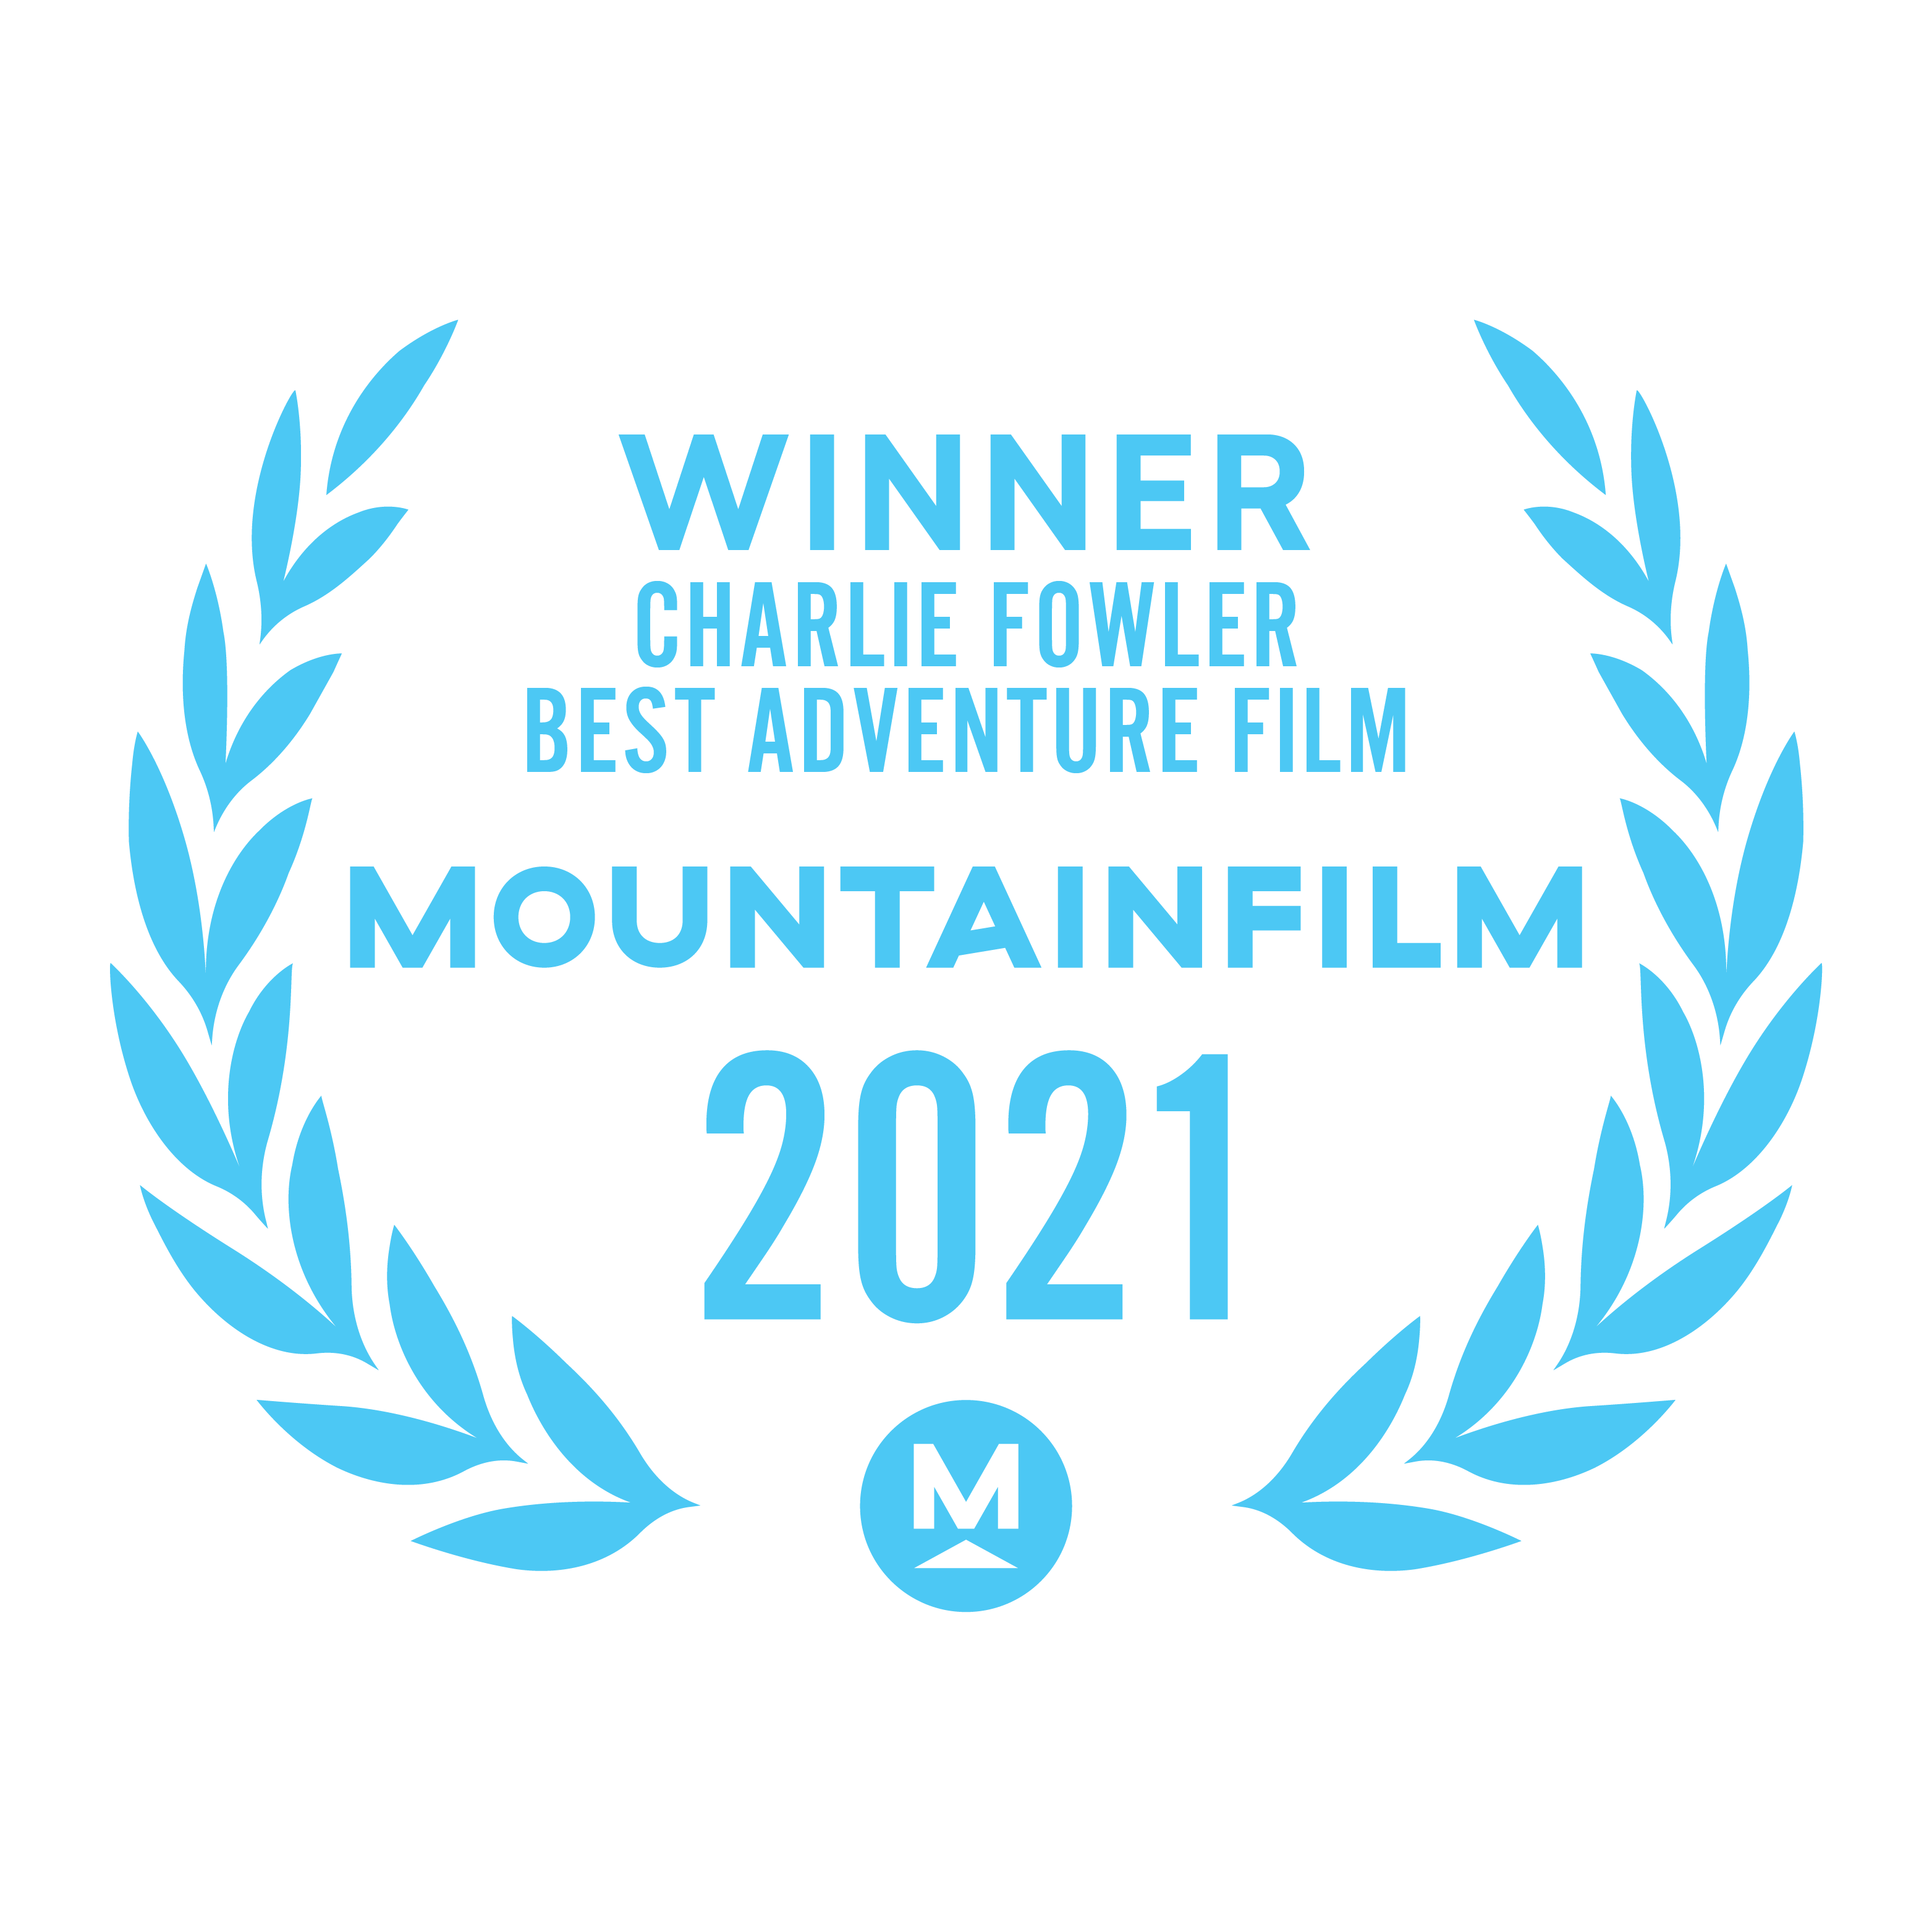 2021 Charlie Fowler Best Adventure Film Award